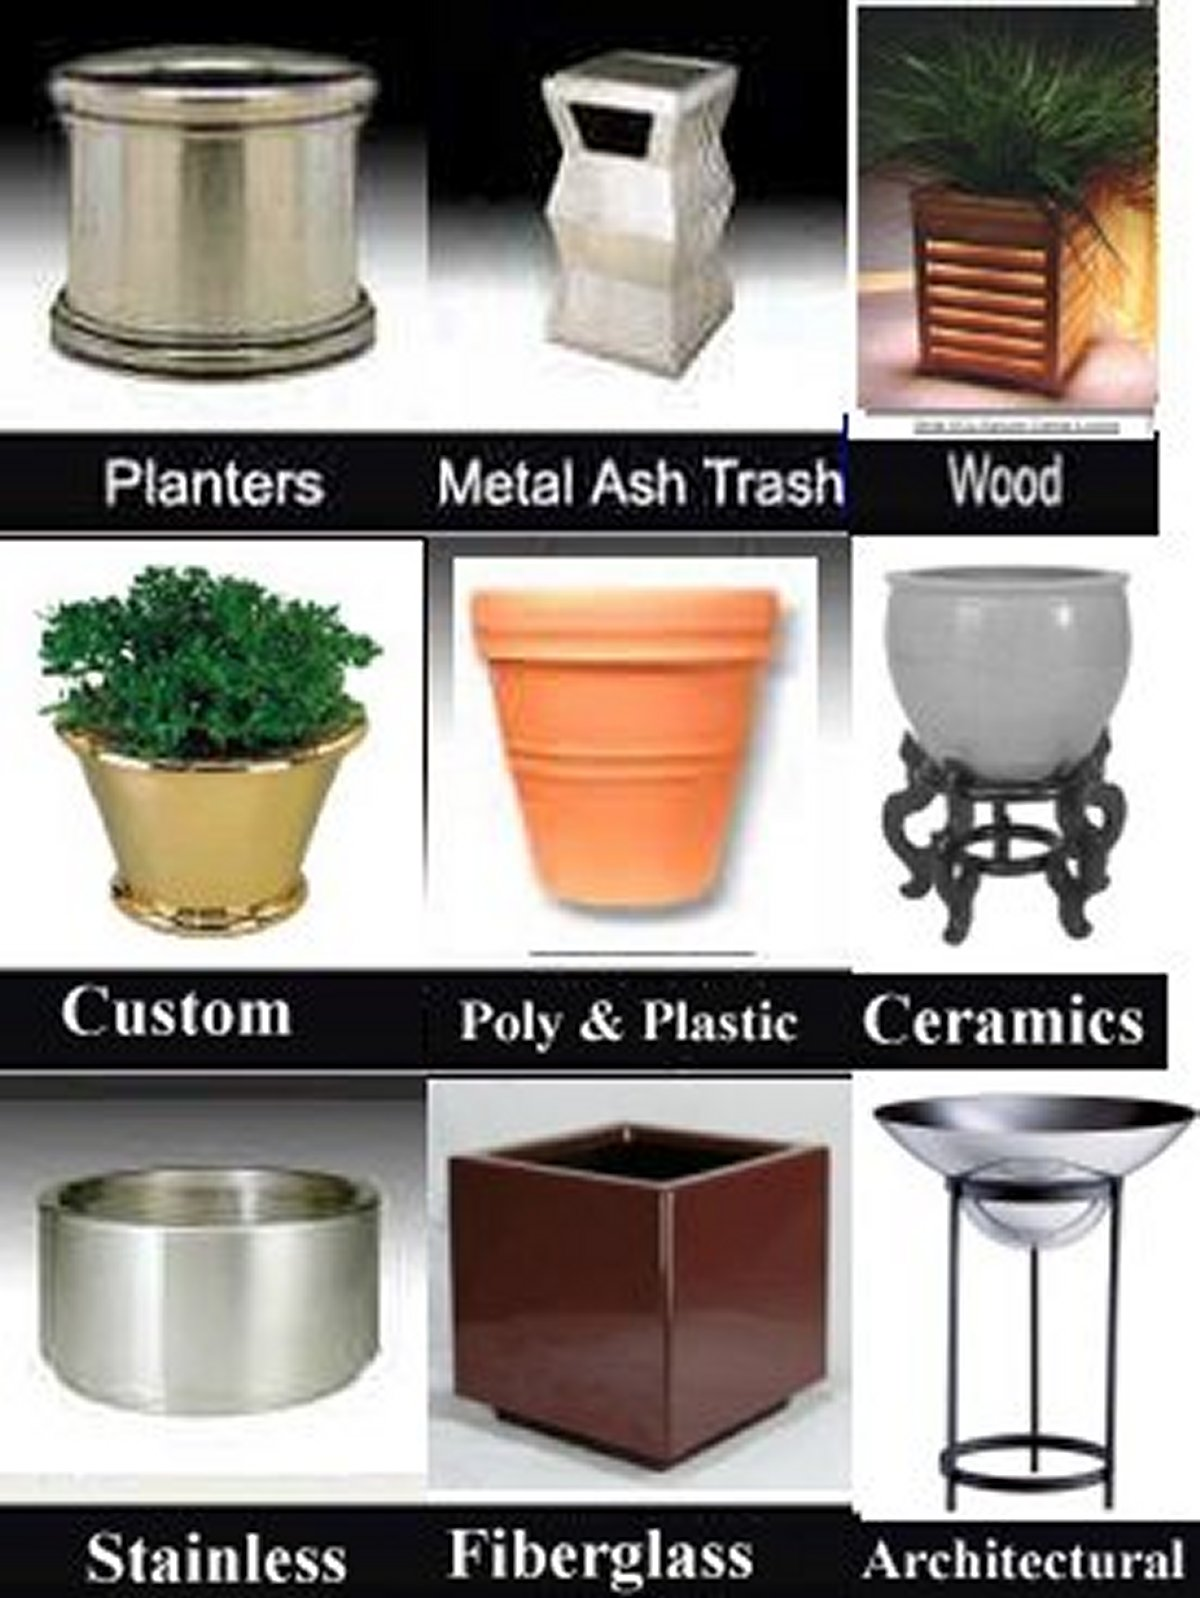 Planter and Receptacle assortment of various materials